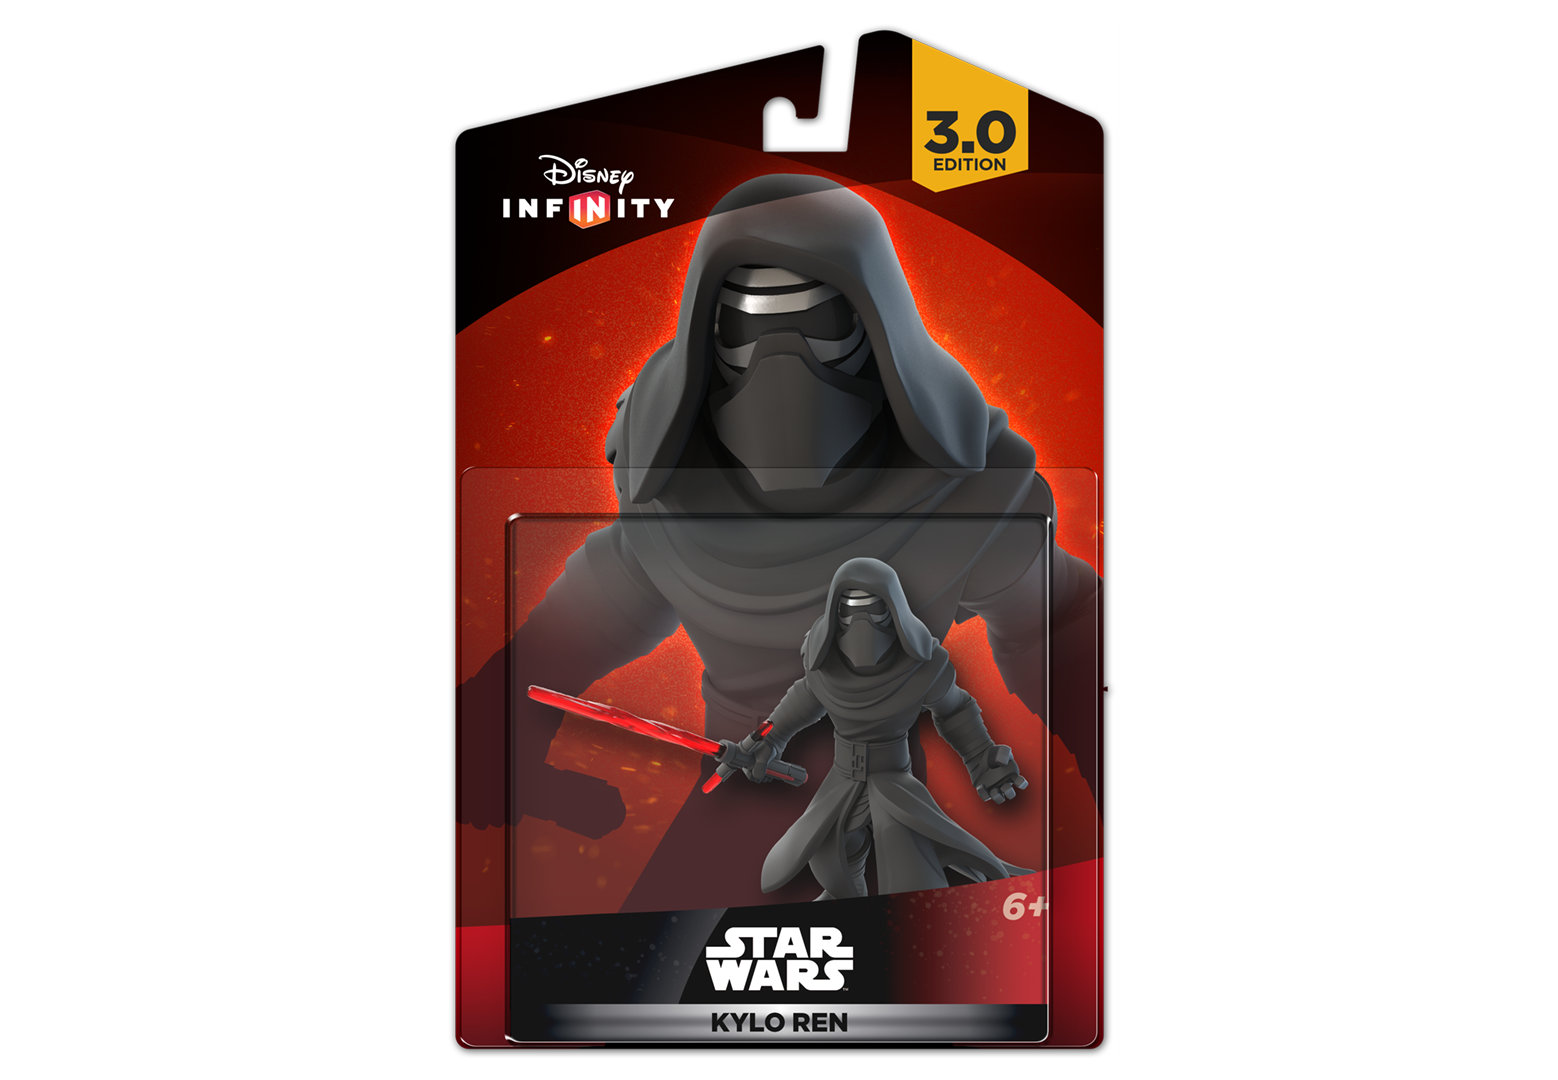 disney infinity 3.0 edition game | ps4 - playstation